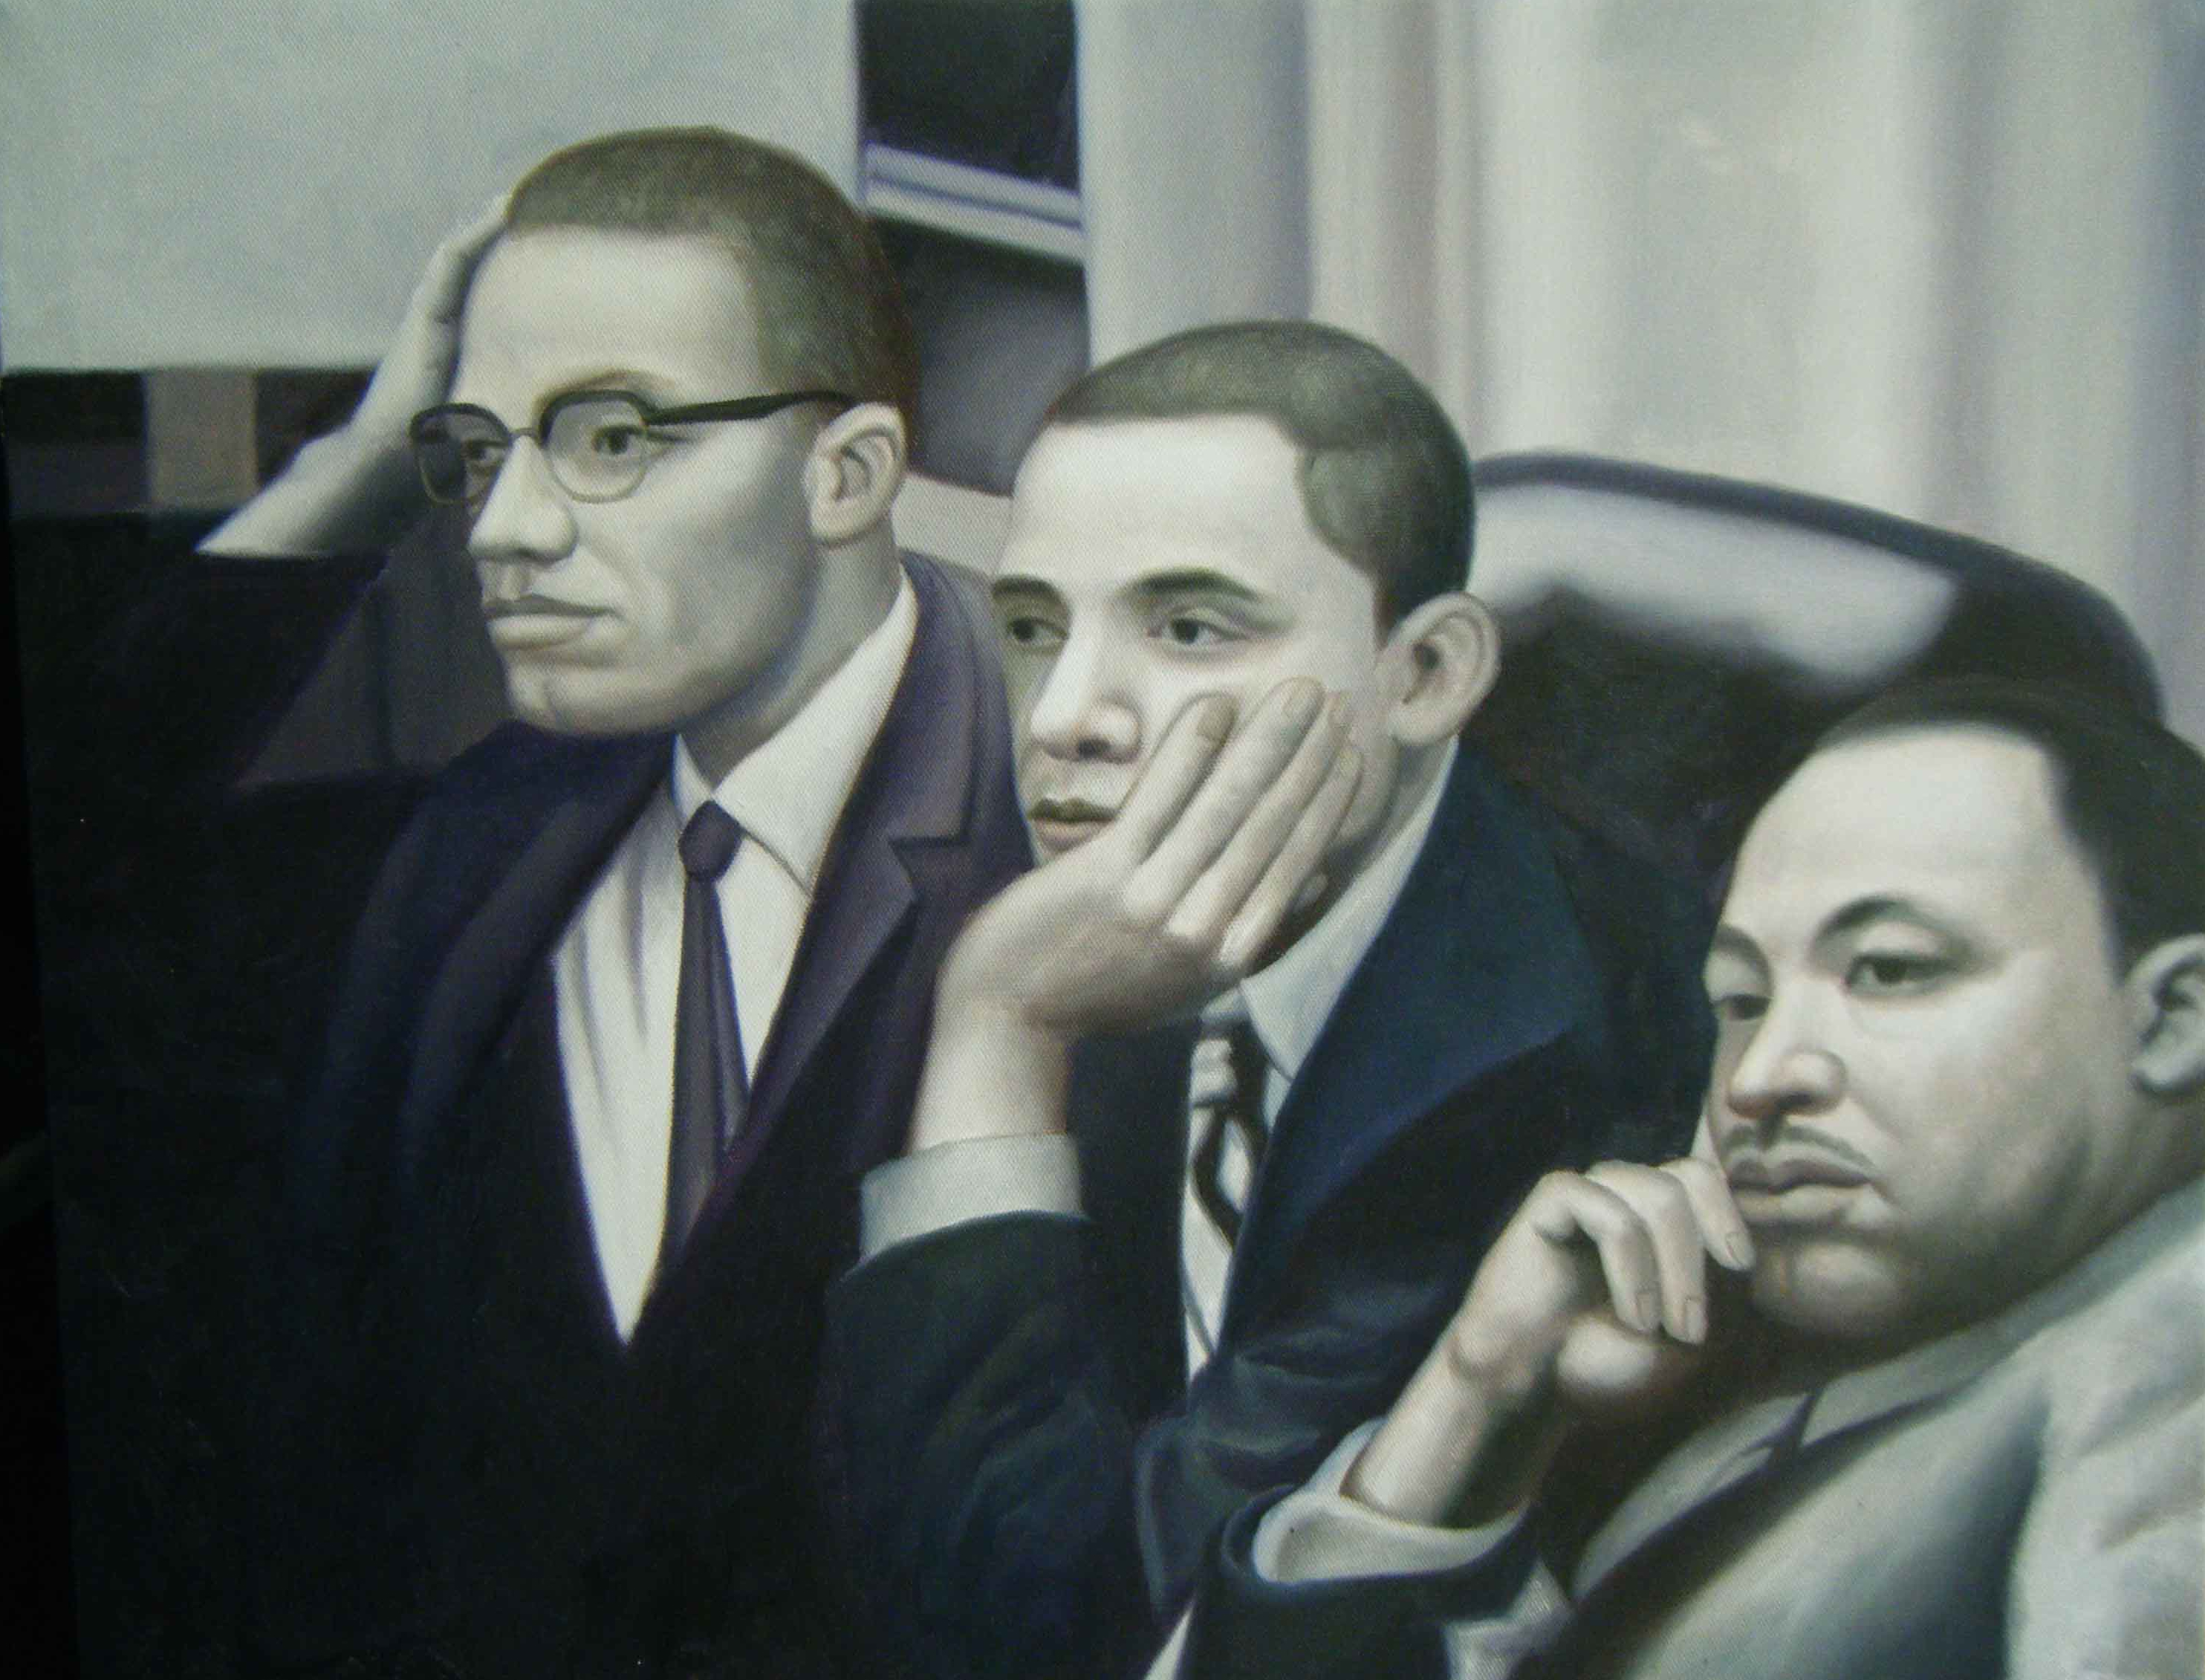 malcom x versus martin luther king dbq Artin luther king, jr and malcolm x are probably the two best known african- american leaders of the last century since their deaths in the 1960's no one has .